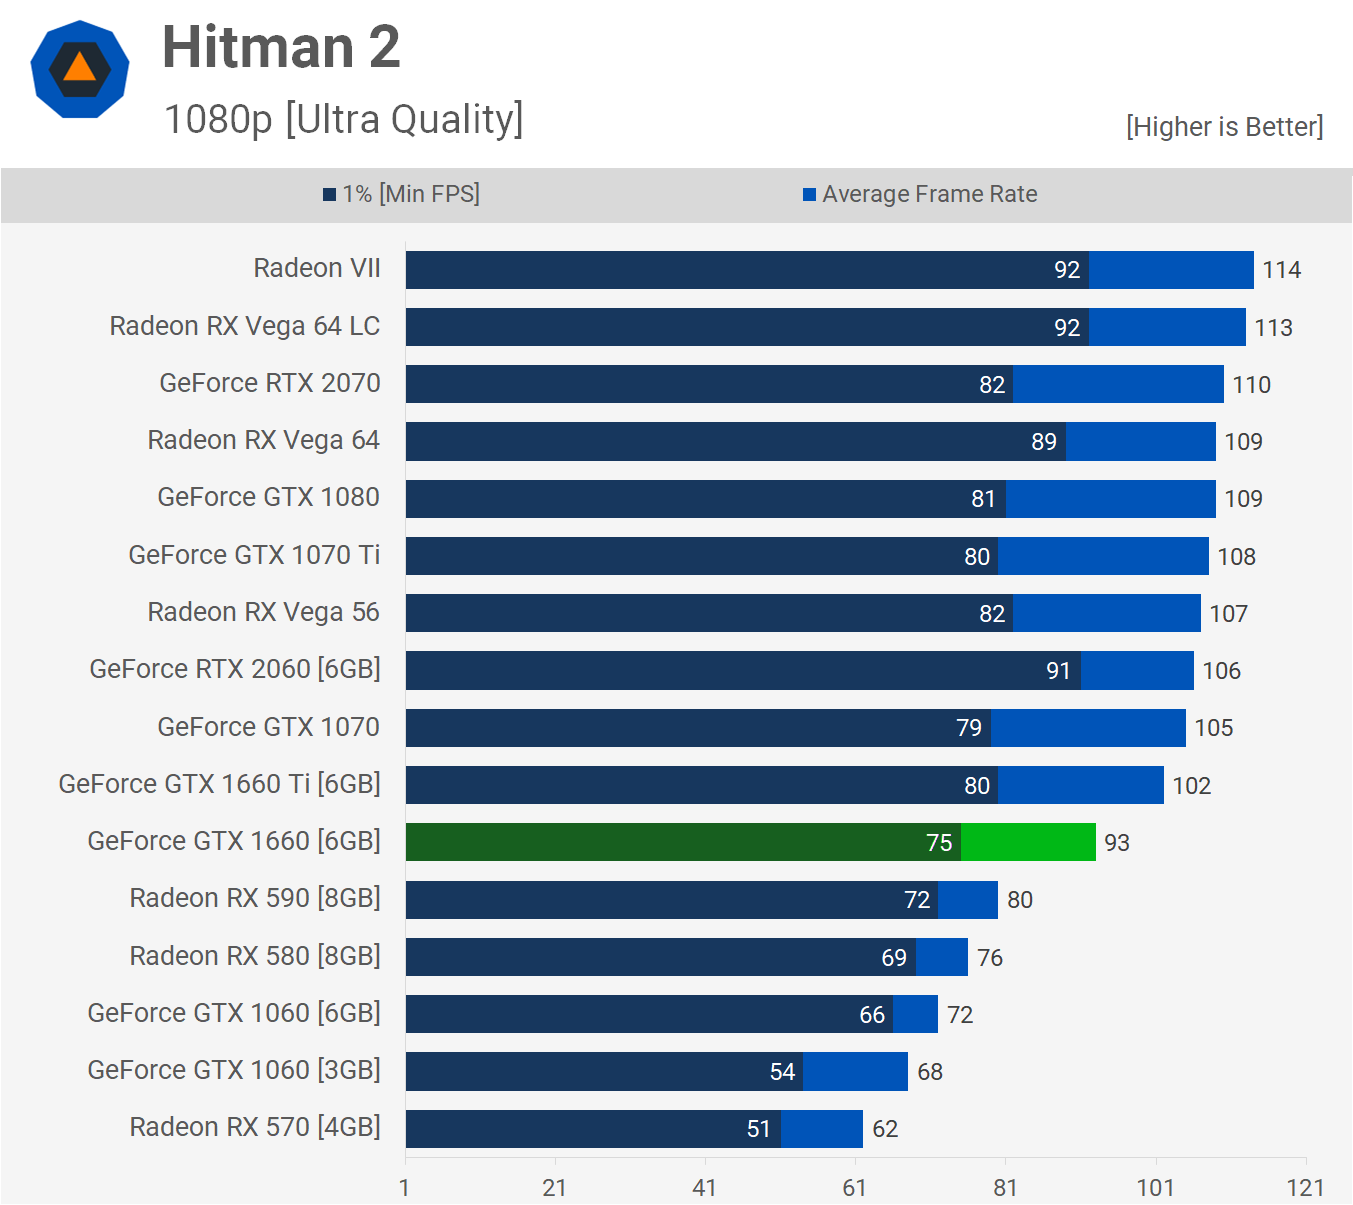 NVIDIA/AMD Linux Gaming Performance For Hitman 2 On Steam